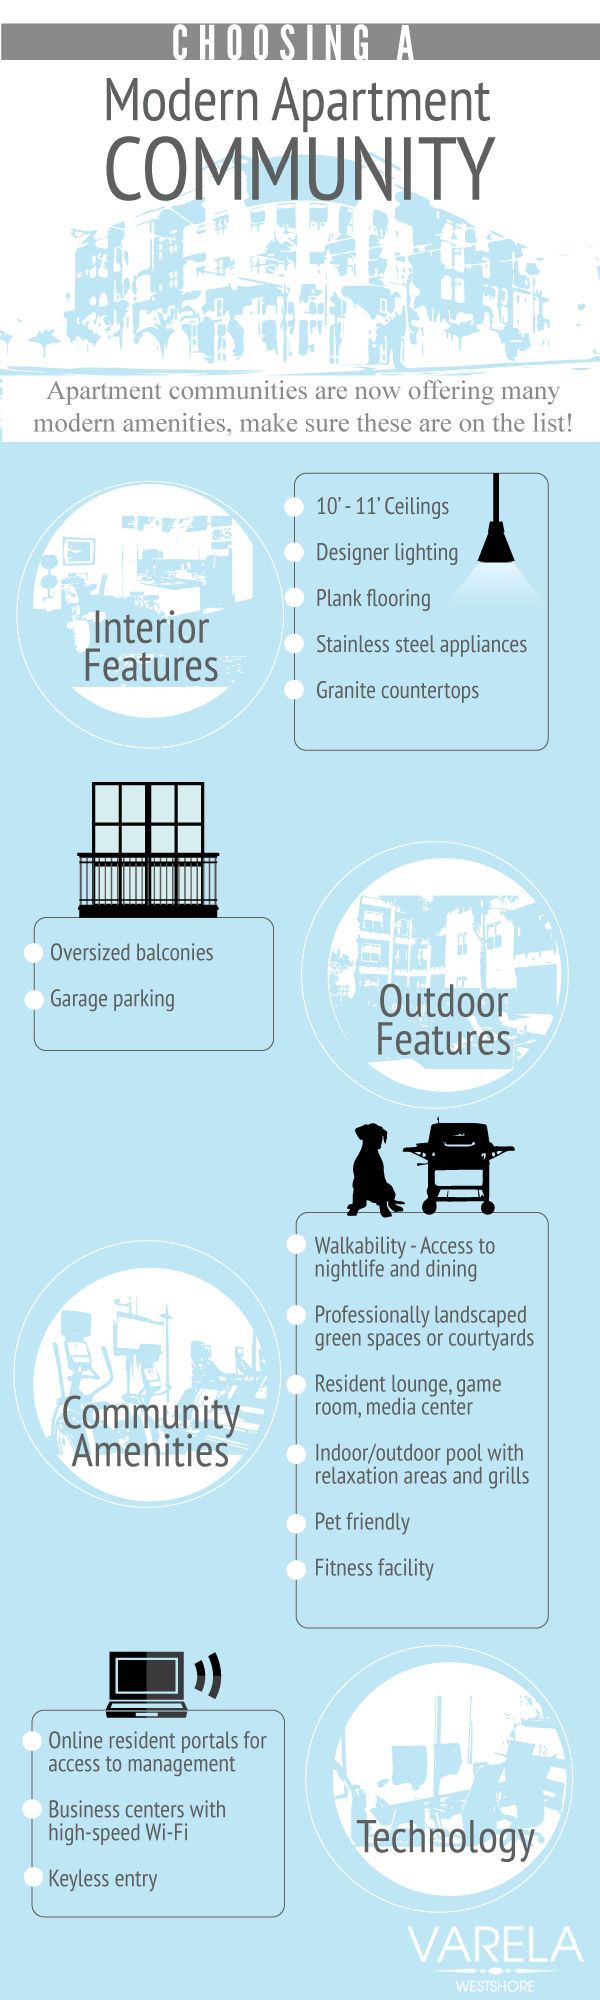 Choosing a Modern Apartment Community Infographic